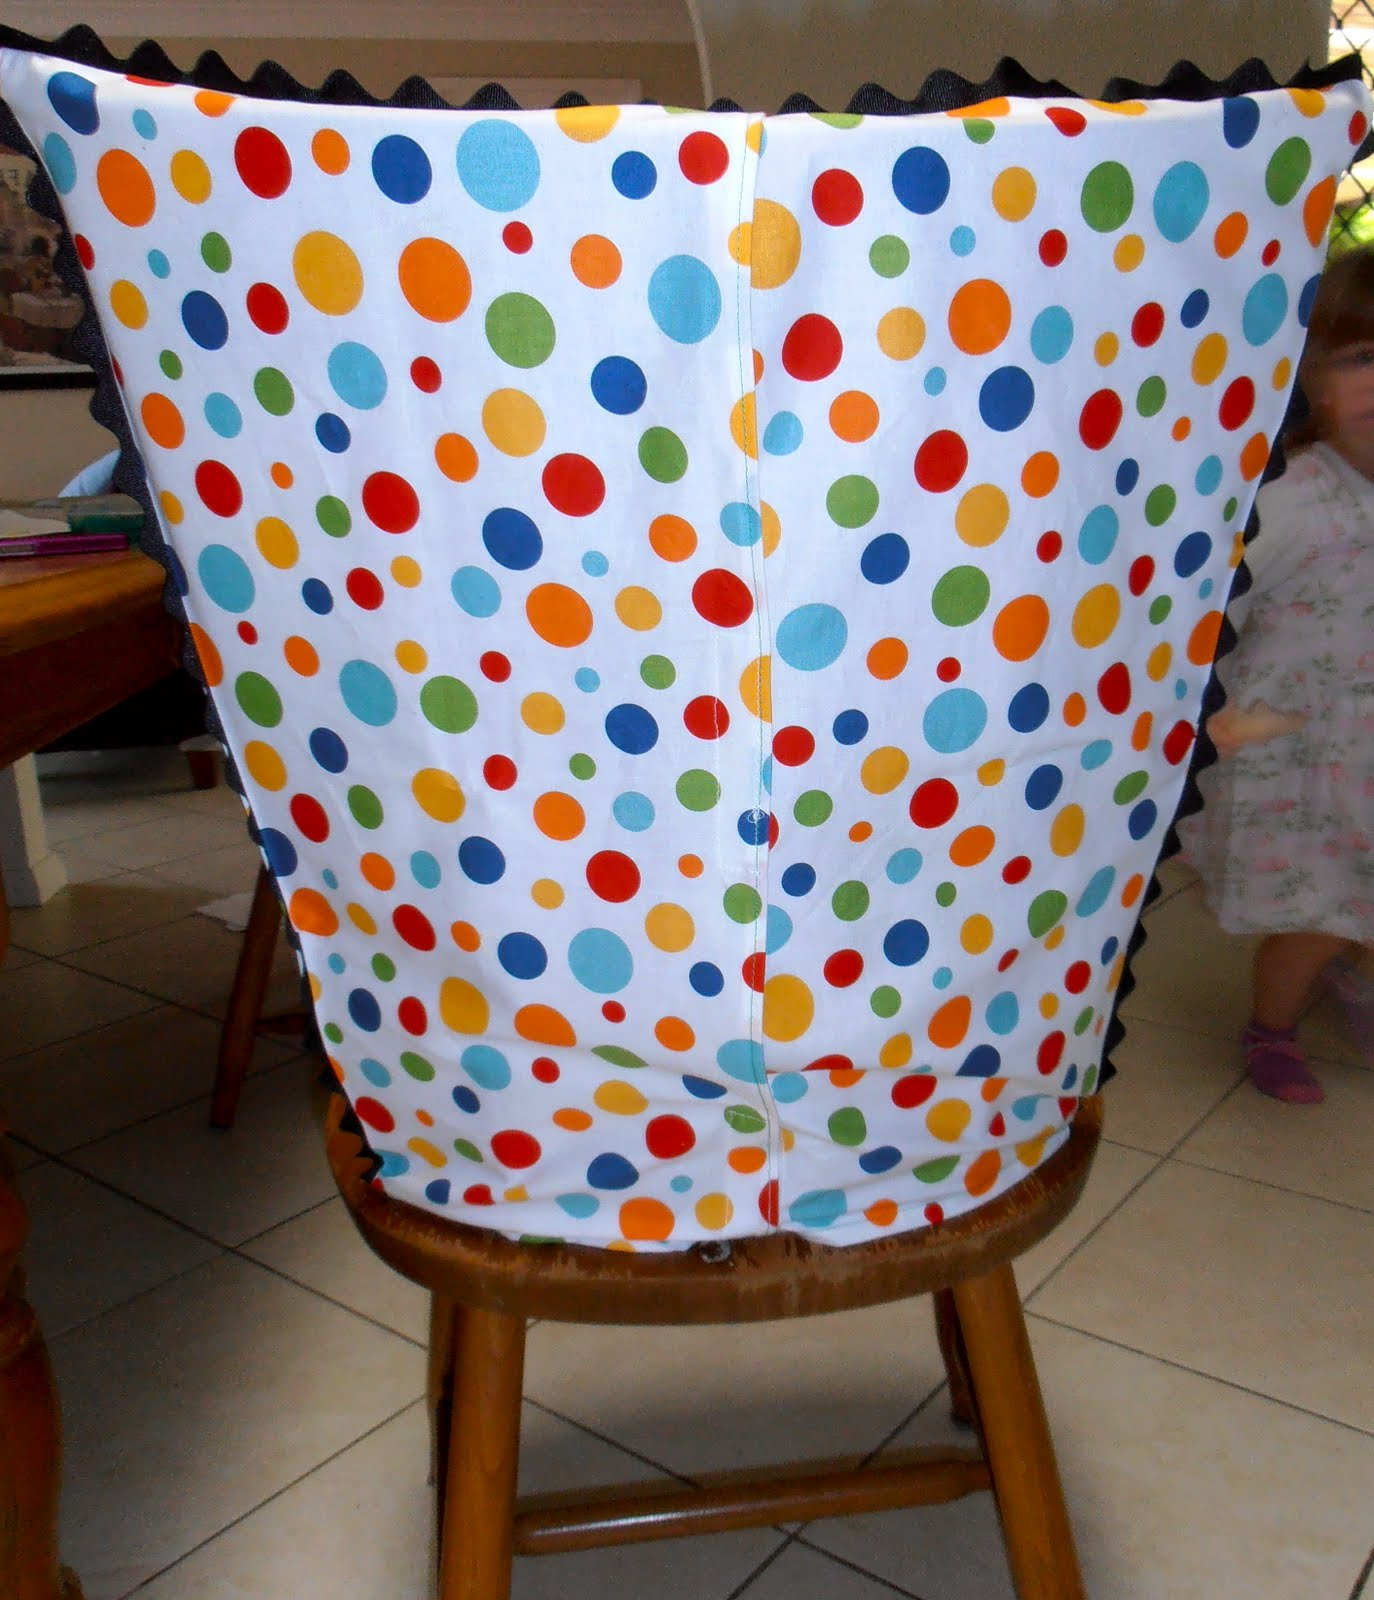 Diy Classroom Chair Covers Stand Test Images Giggleberry Creations It 39s My Birthday Cover